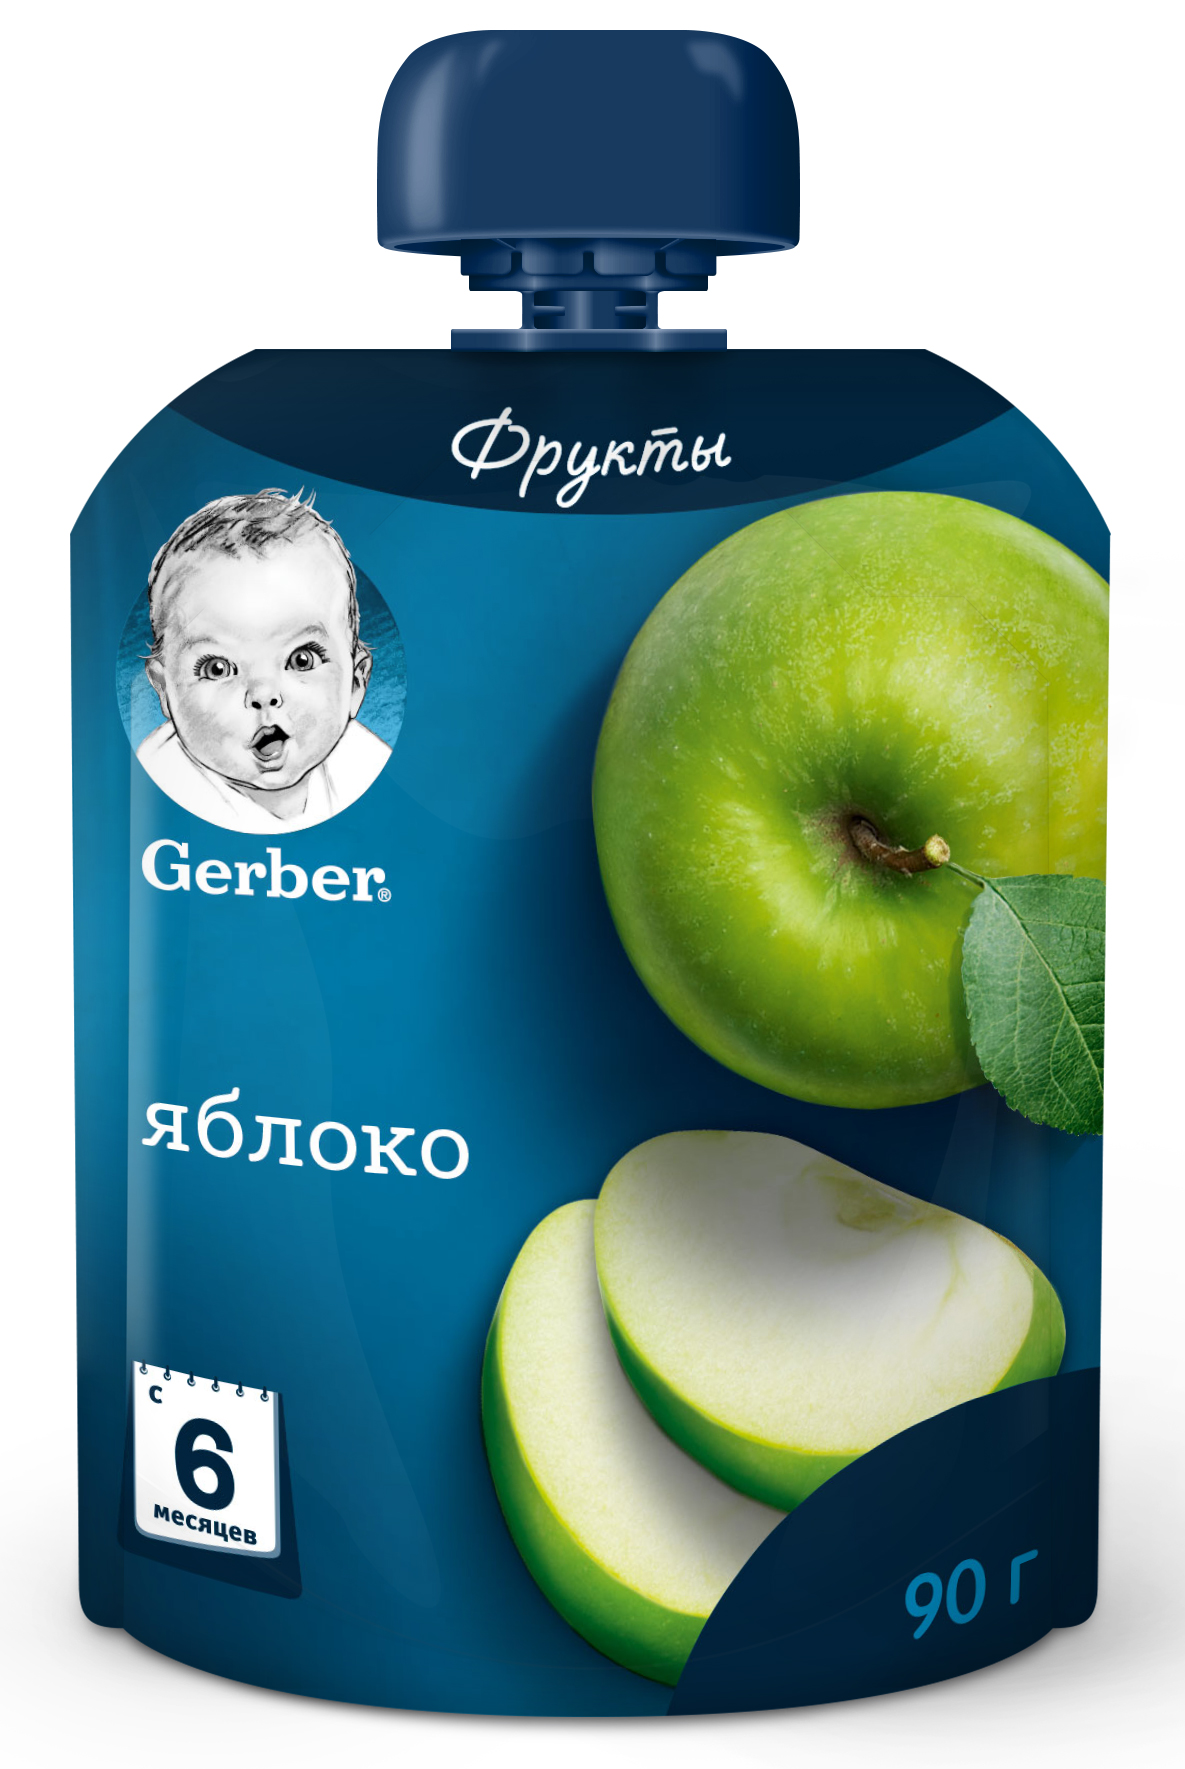 004_3D_Gerber_pouch_90g_apple_v10